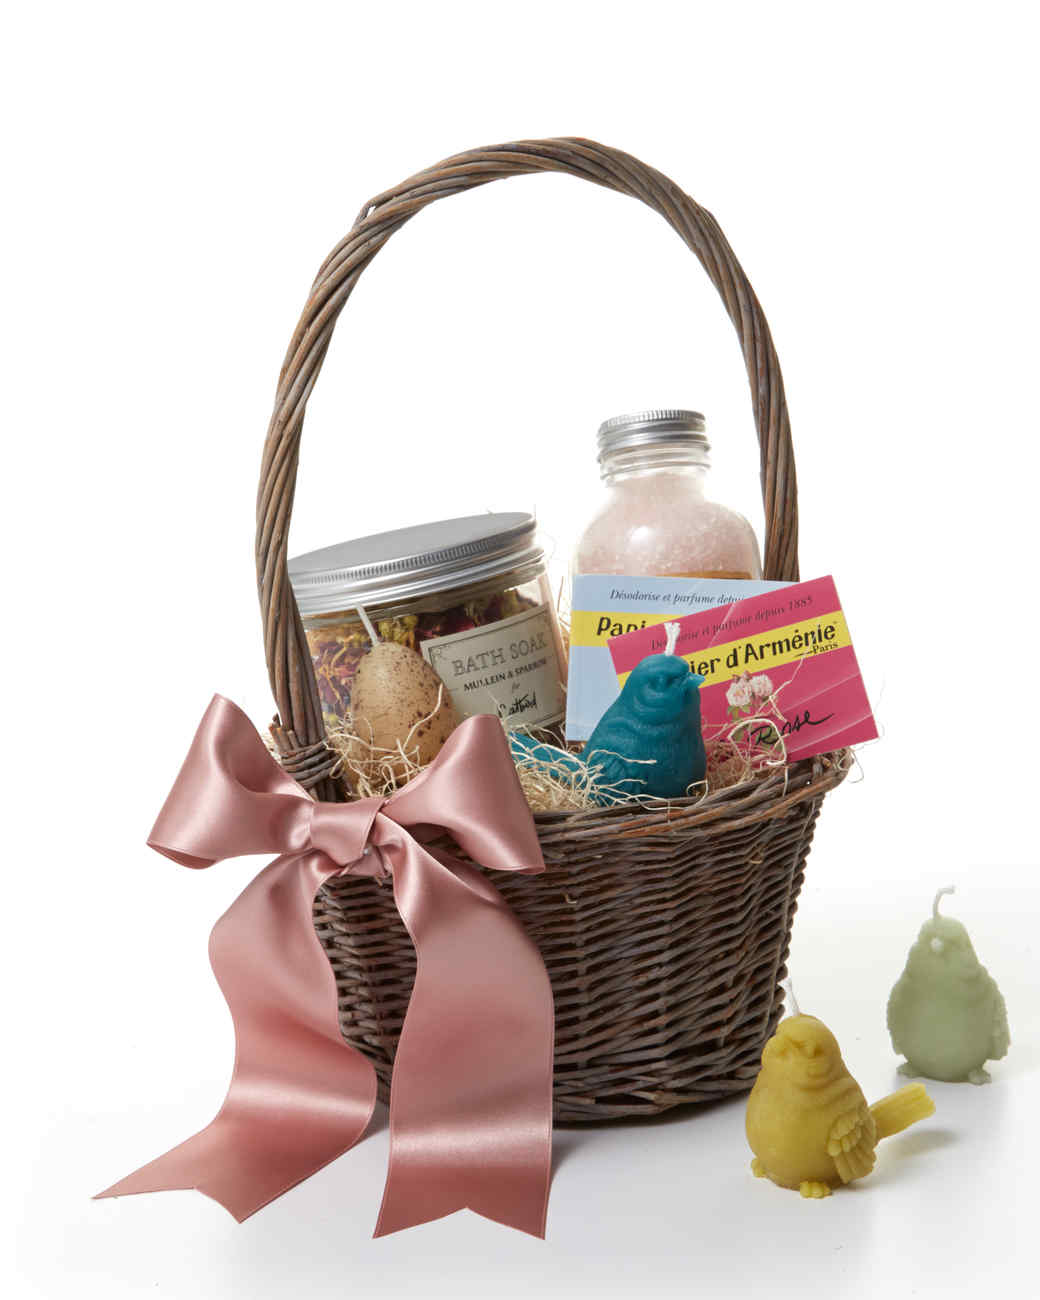 8 luxurious easter basket ideas for adults martha stewart photography mike krautter negle Choice Image